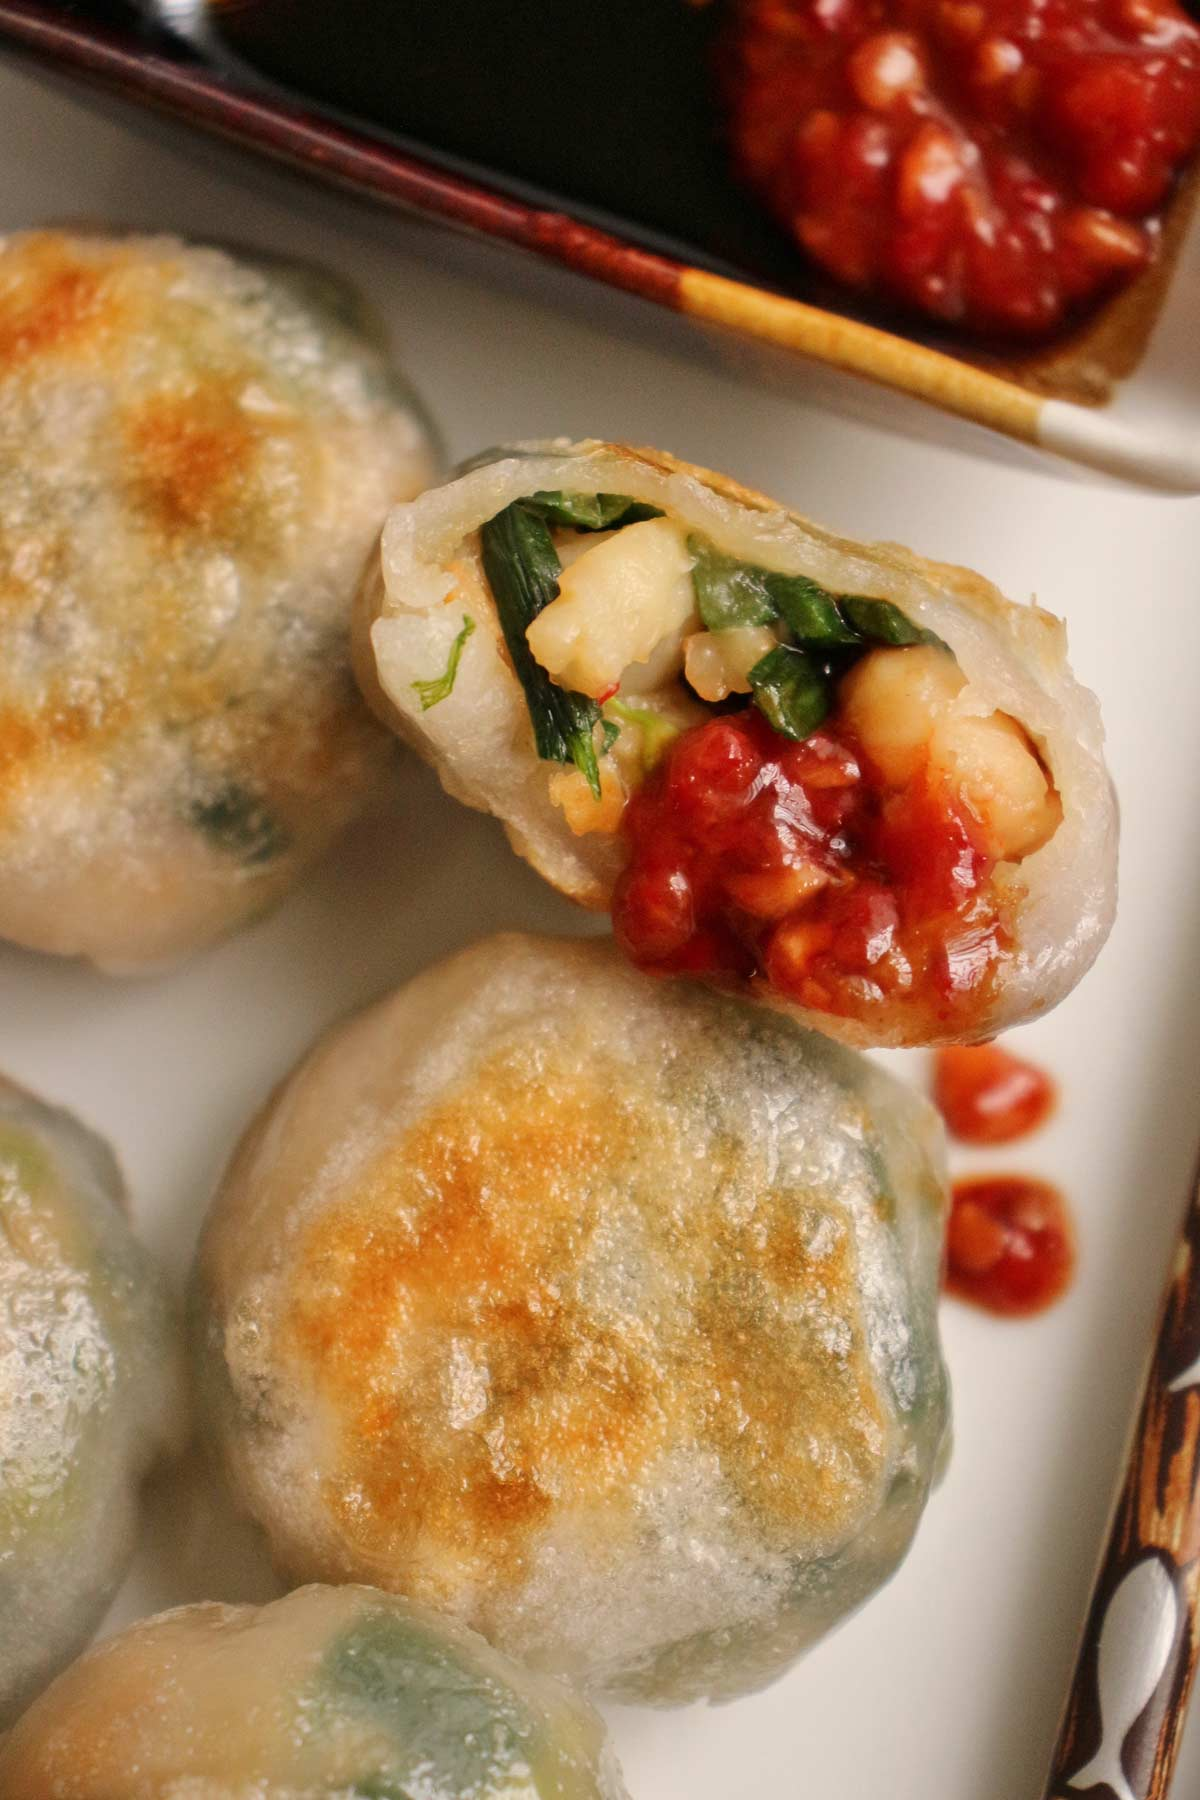 Closeup of a half eaten shrimp and chive dumpling with chile garlic sauce dripping down.